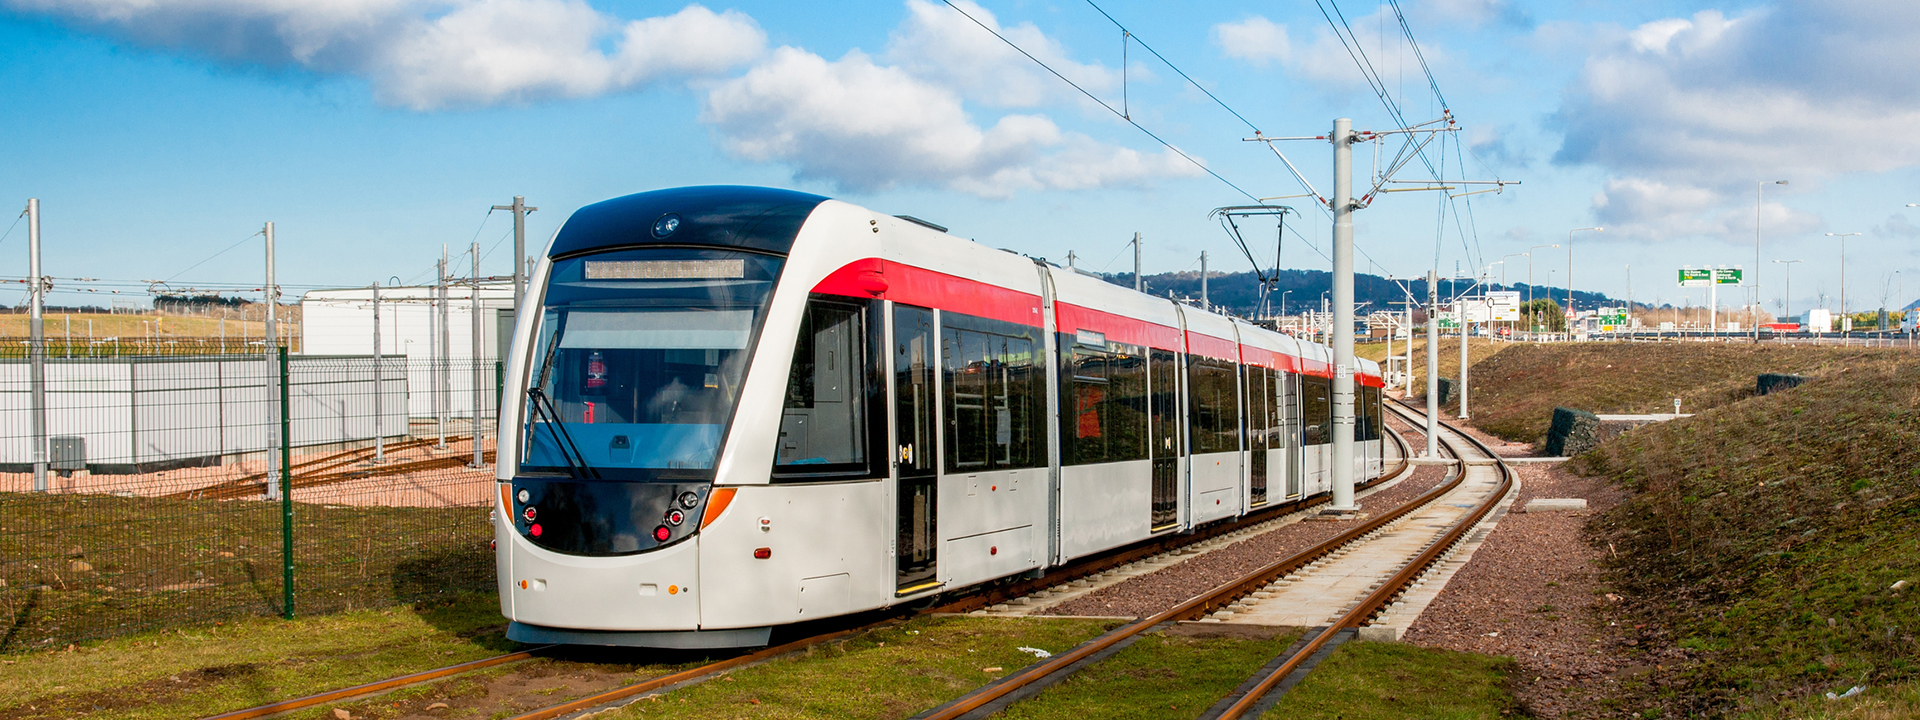 Edinburgh Trams 'Highly Commended'